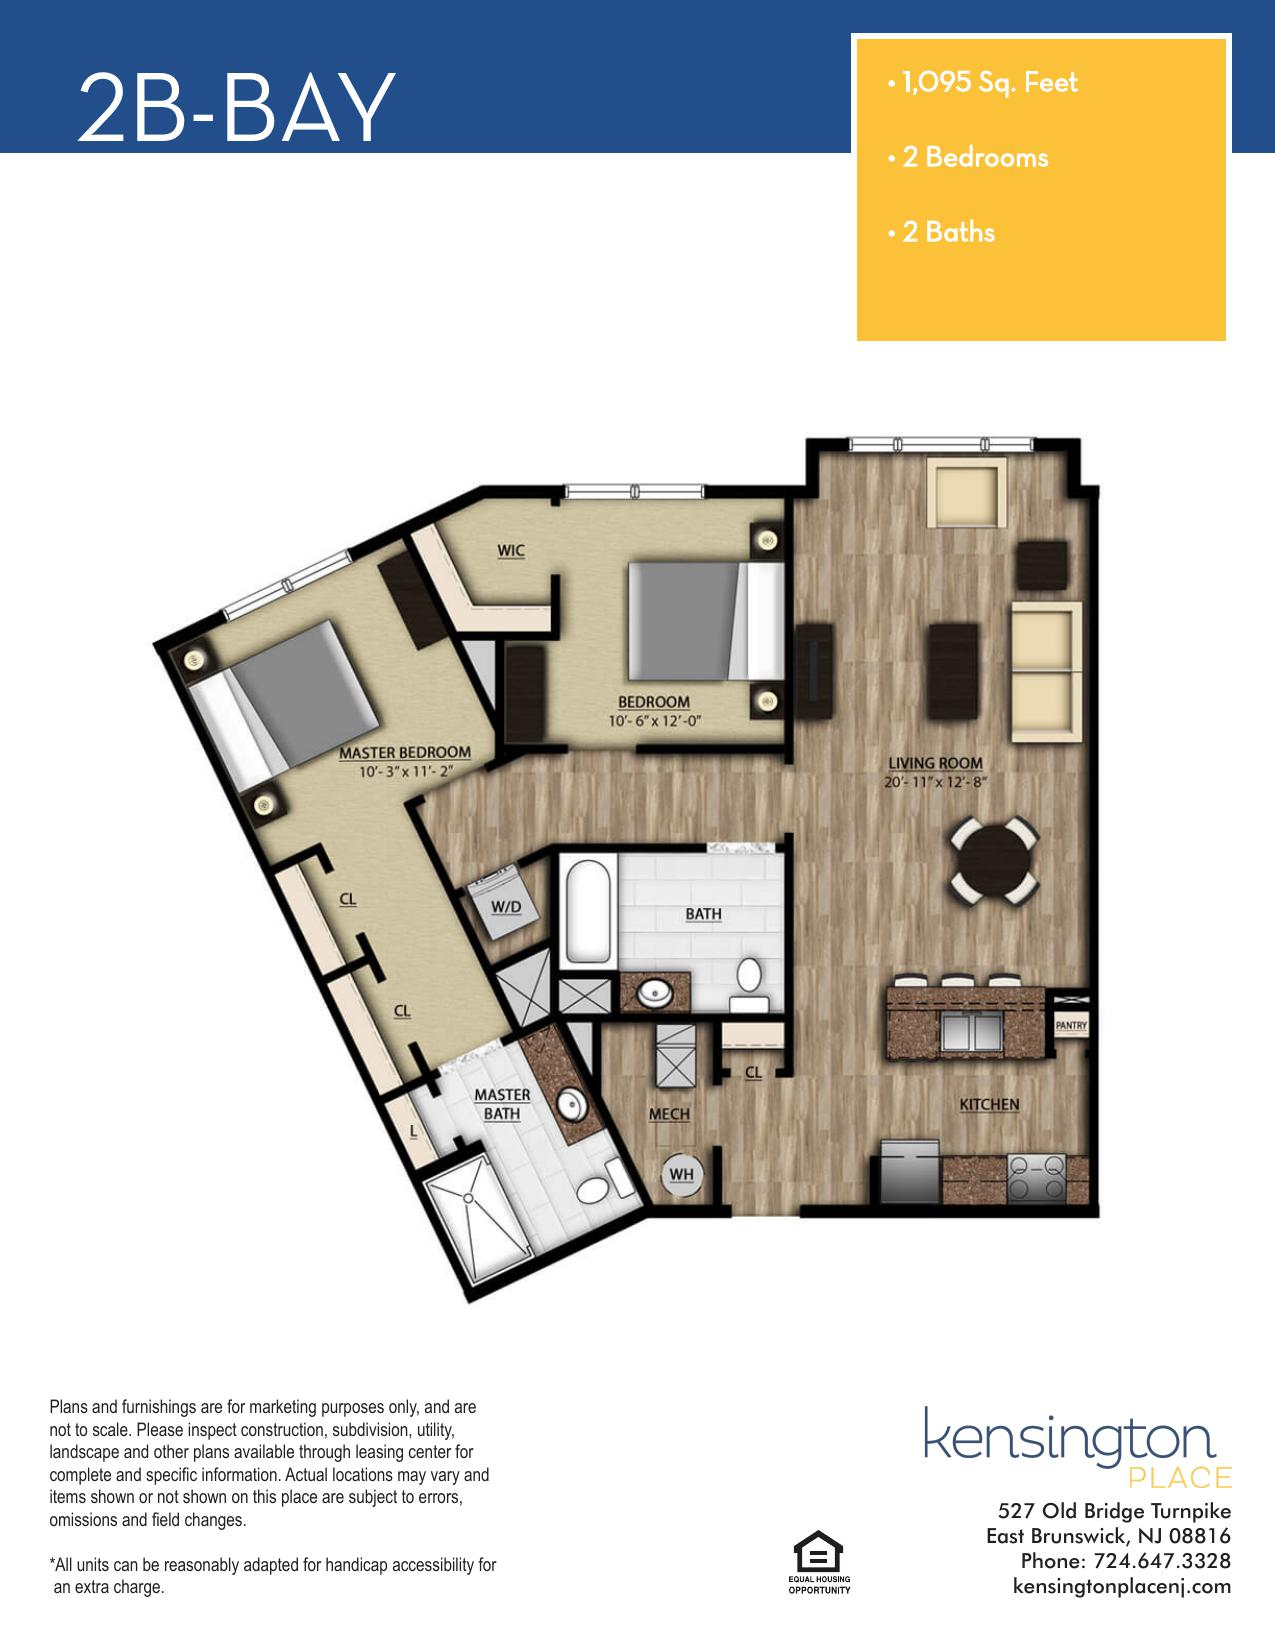 Kensington Place Apartment Floor Plan 2B BAY